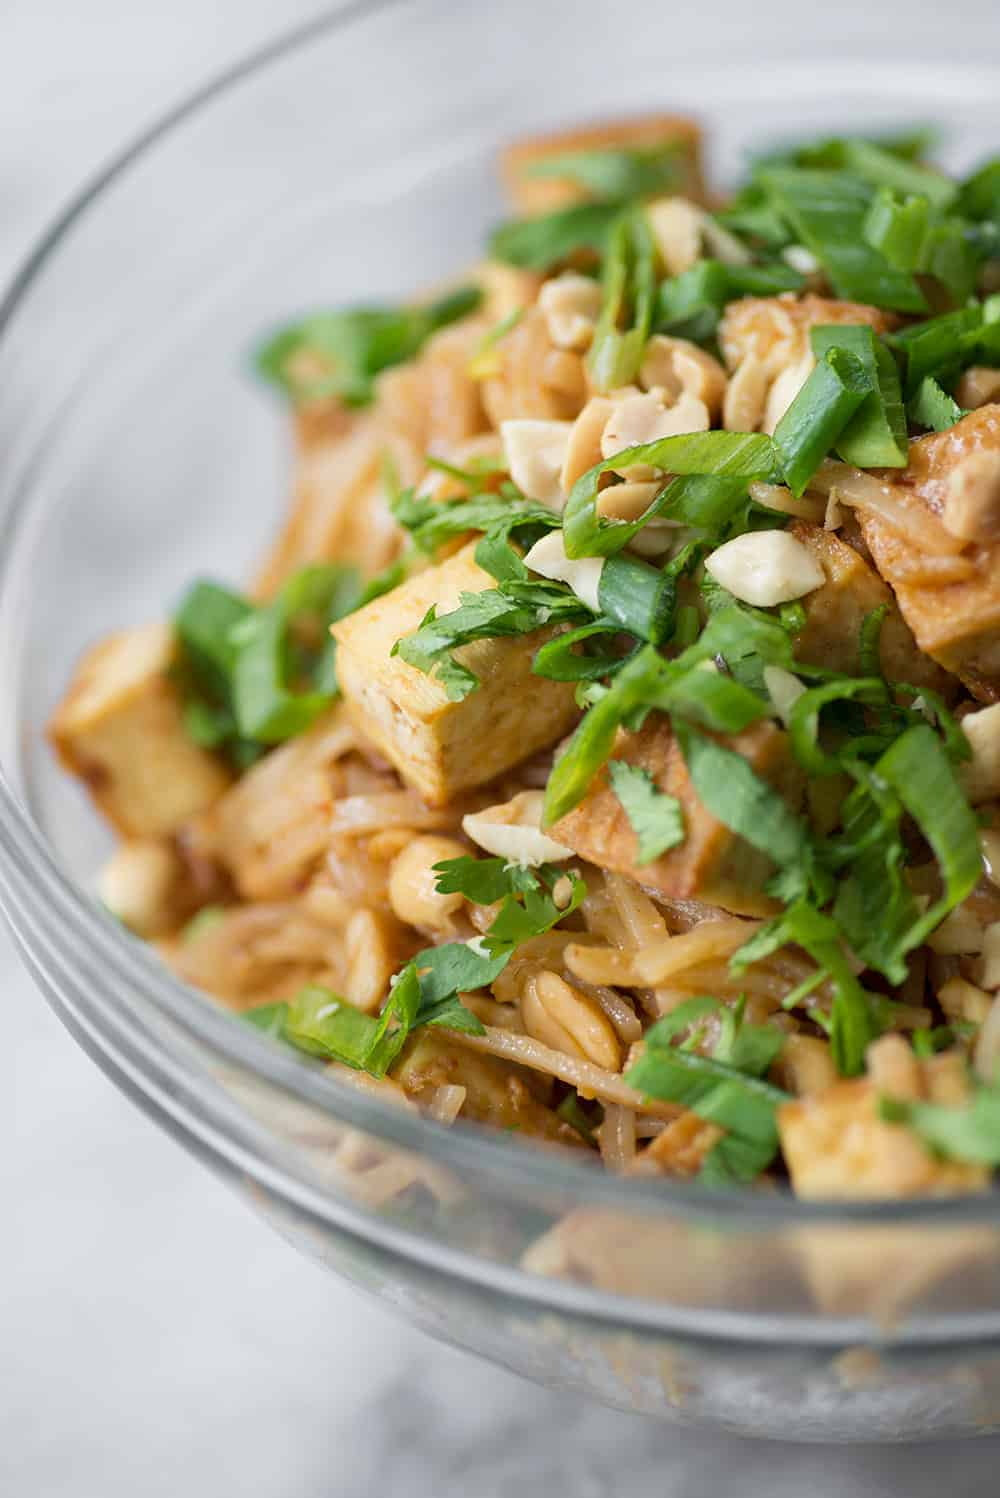 bowl of spicy peanut noodles and tofu